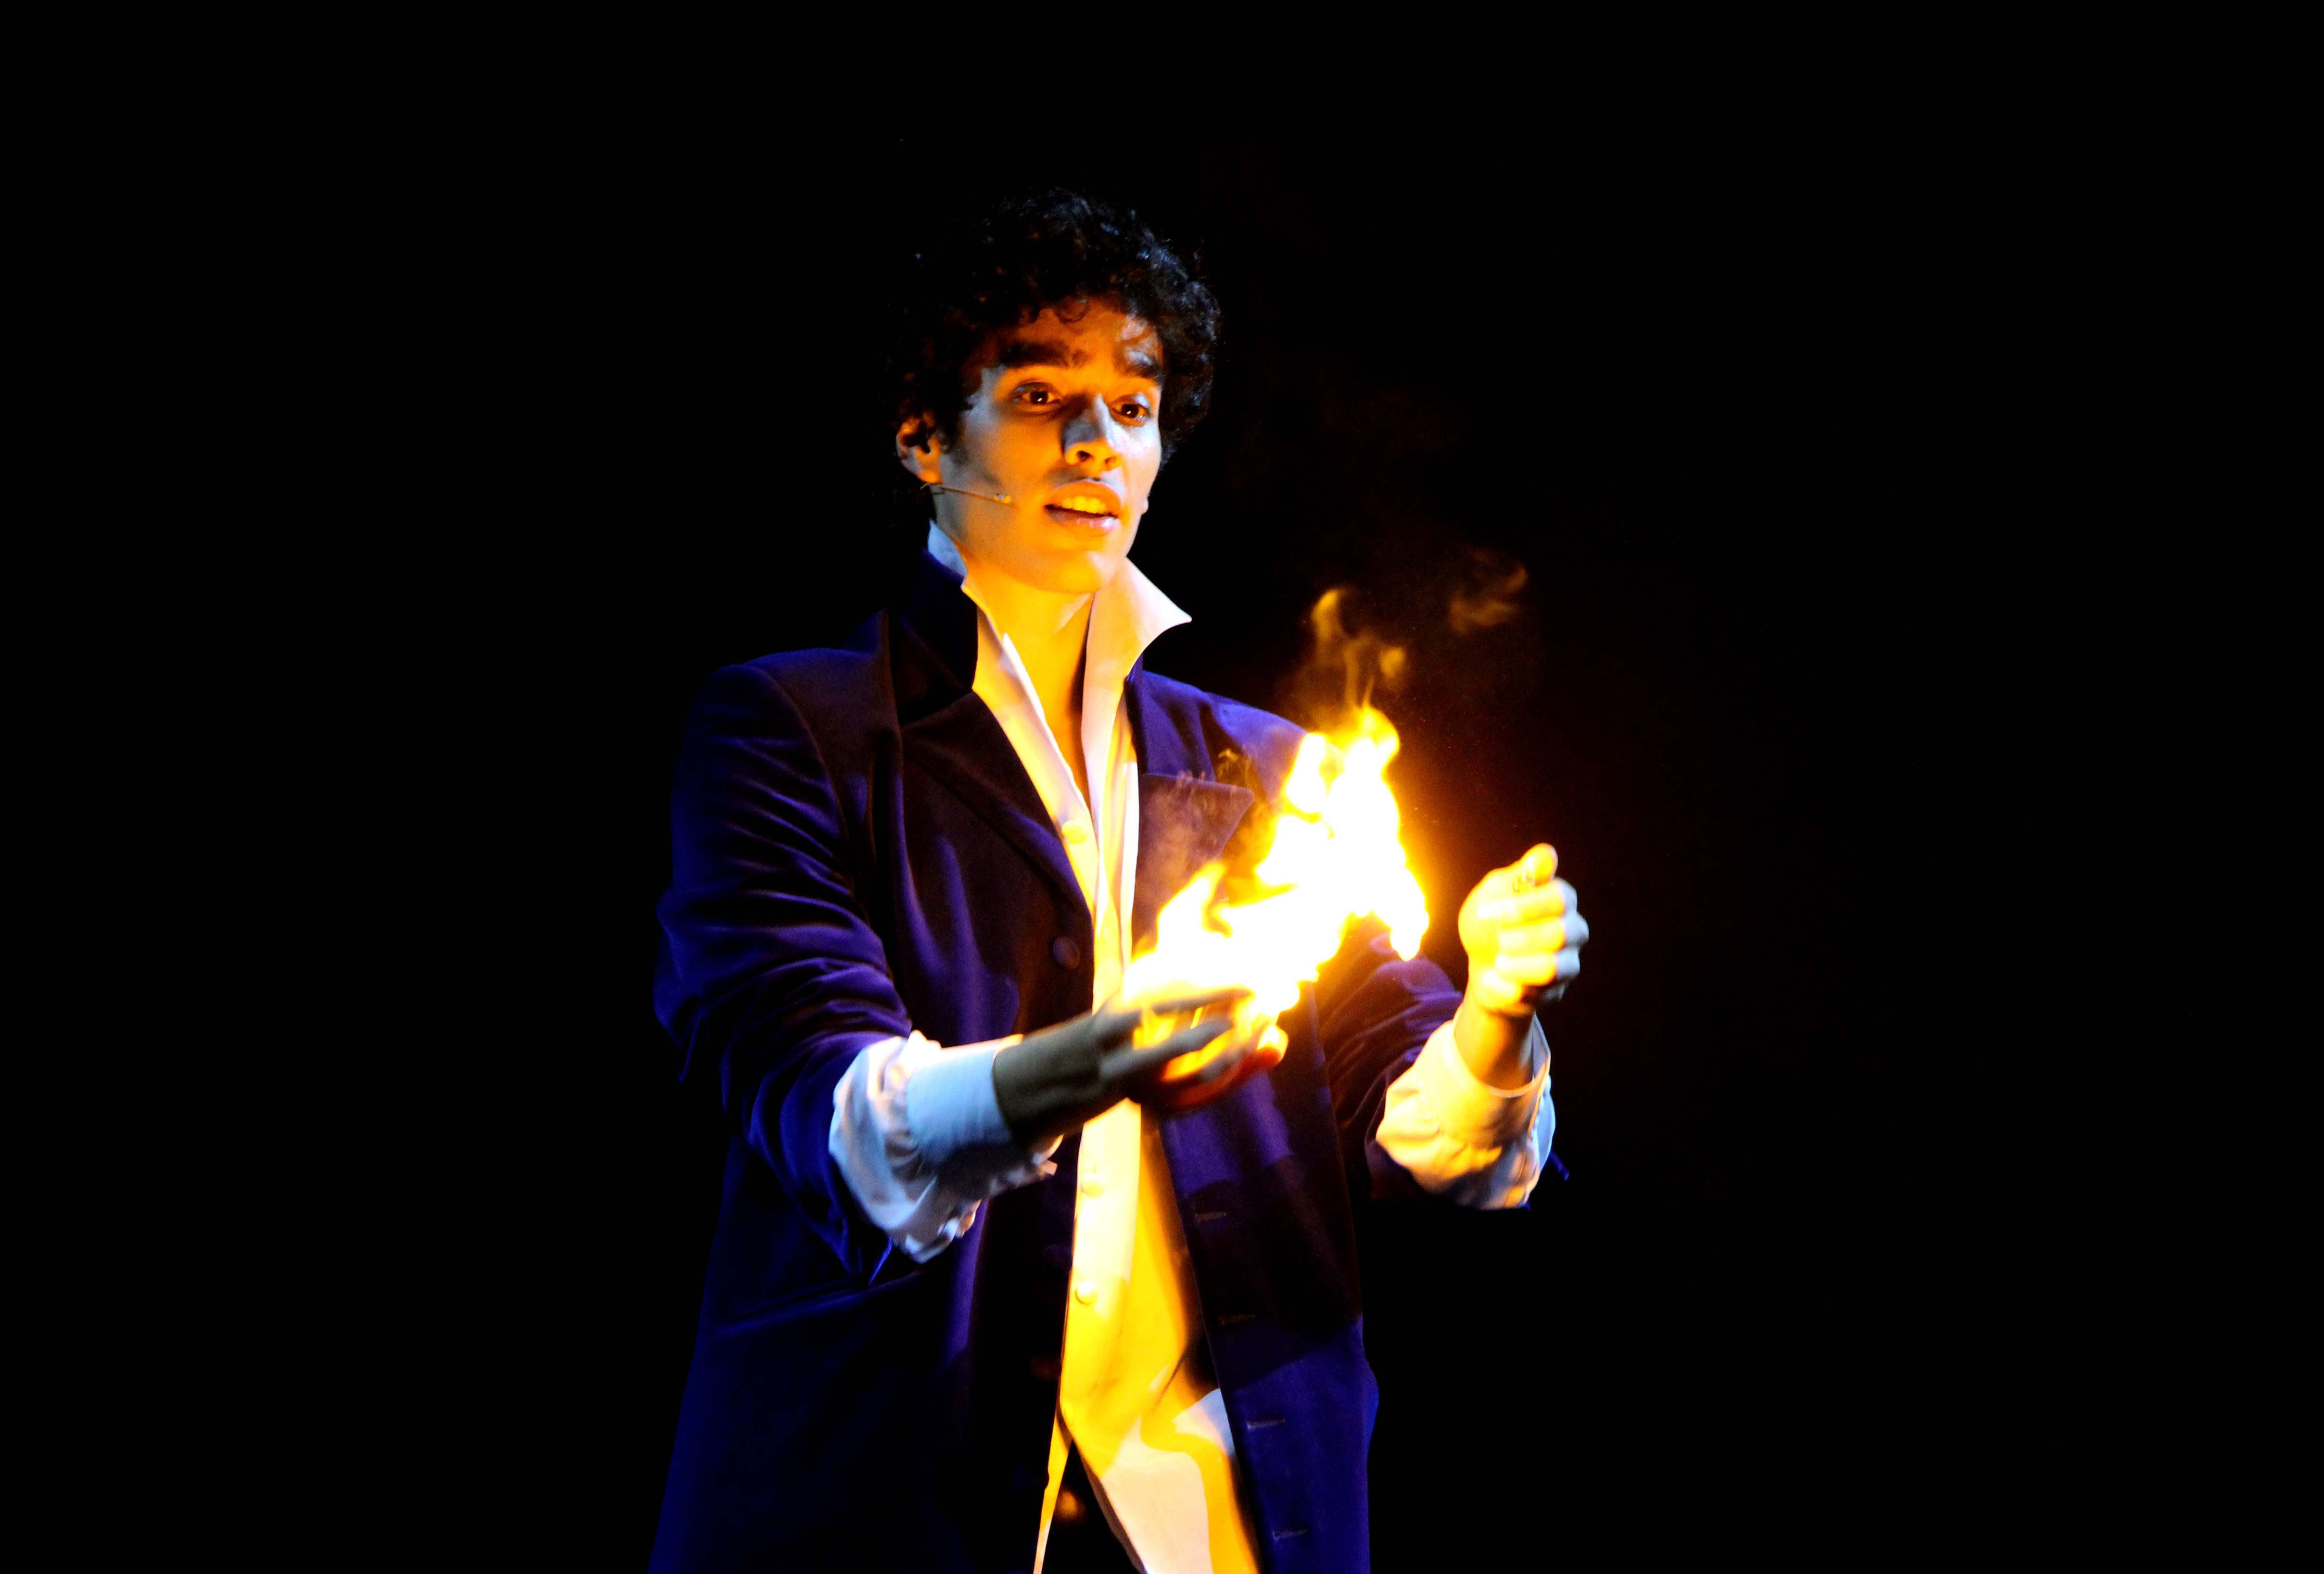 10-Moulla-Fire_act.jpg